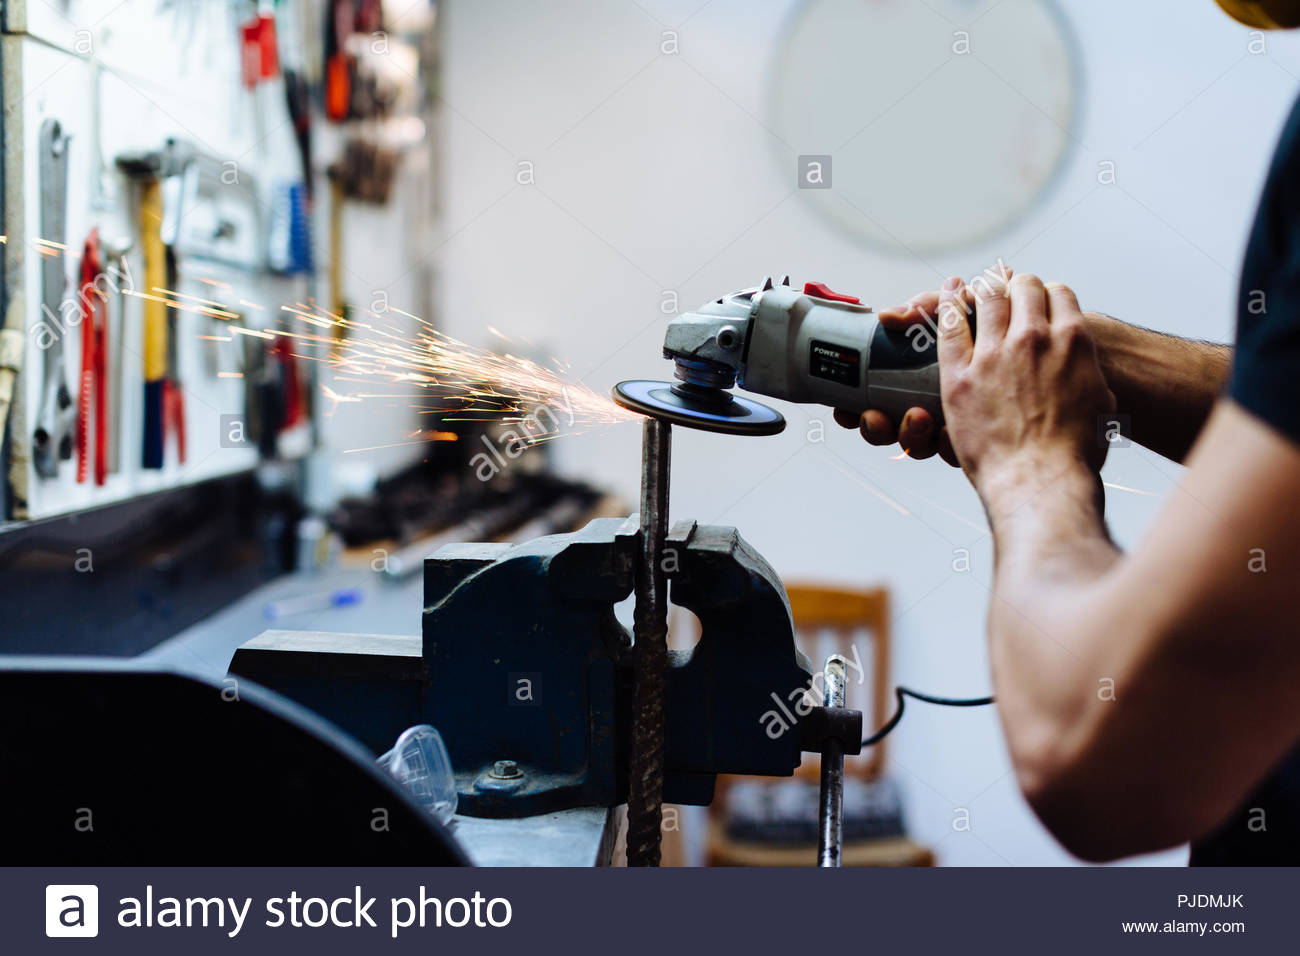 Young man using angle grinder on metal in workshop, cropped - Stock Image